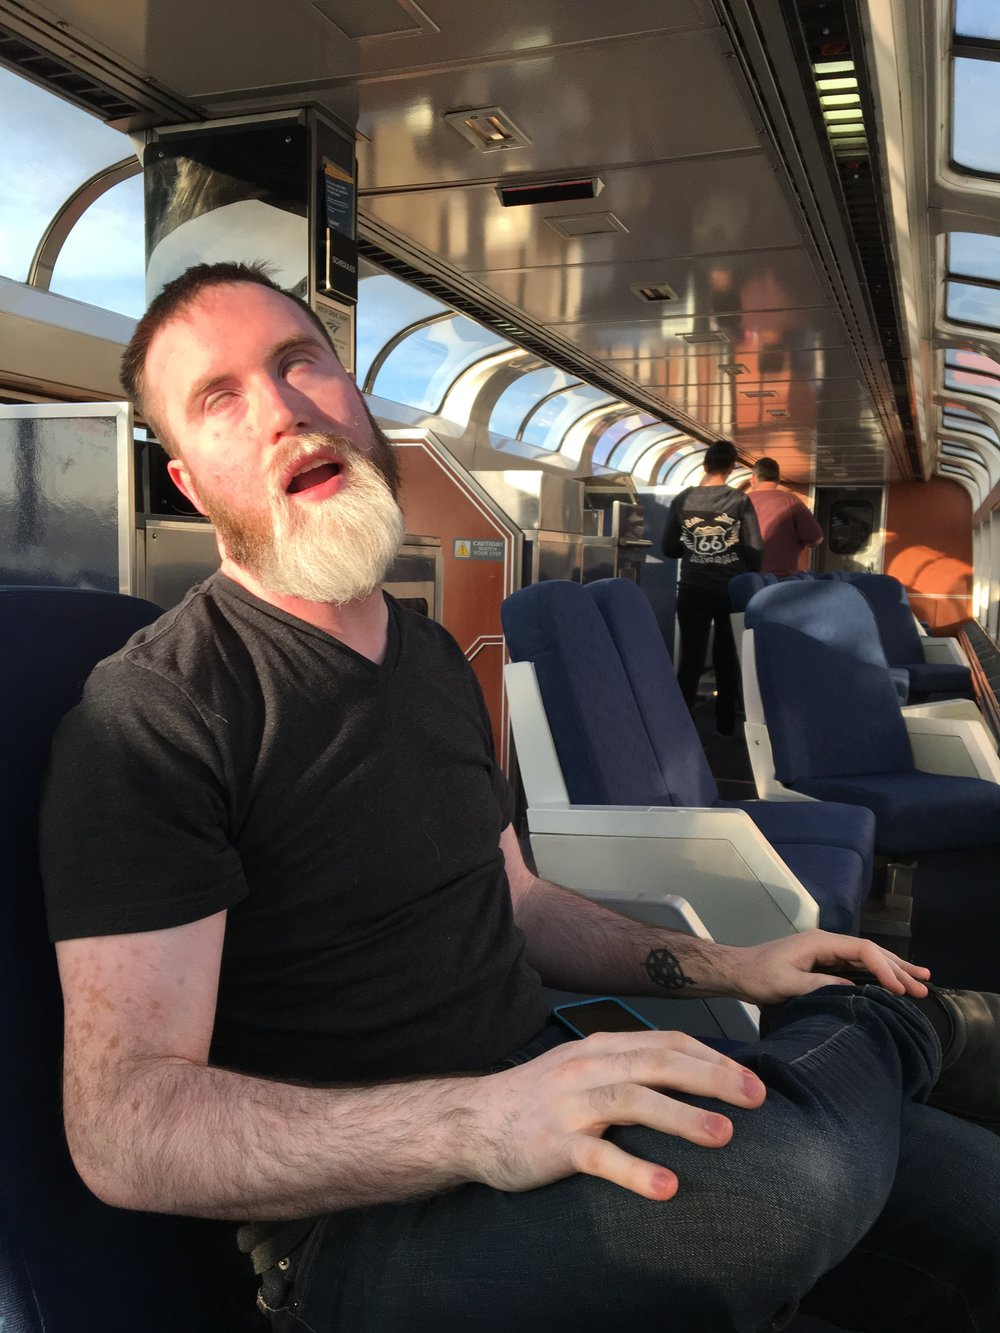 Dan makes faces for my camera in the Observation car. It took three tries to get a decent shot of him, silly guy.